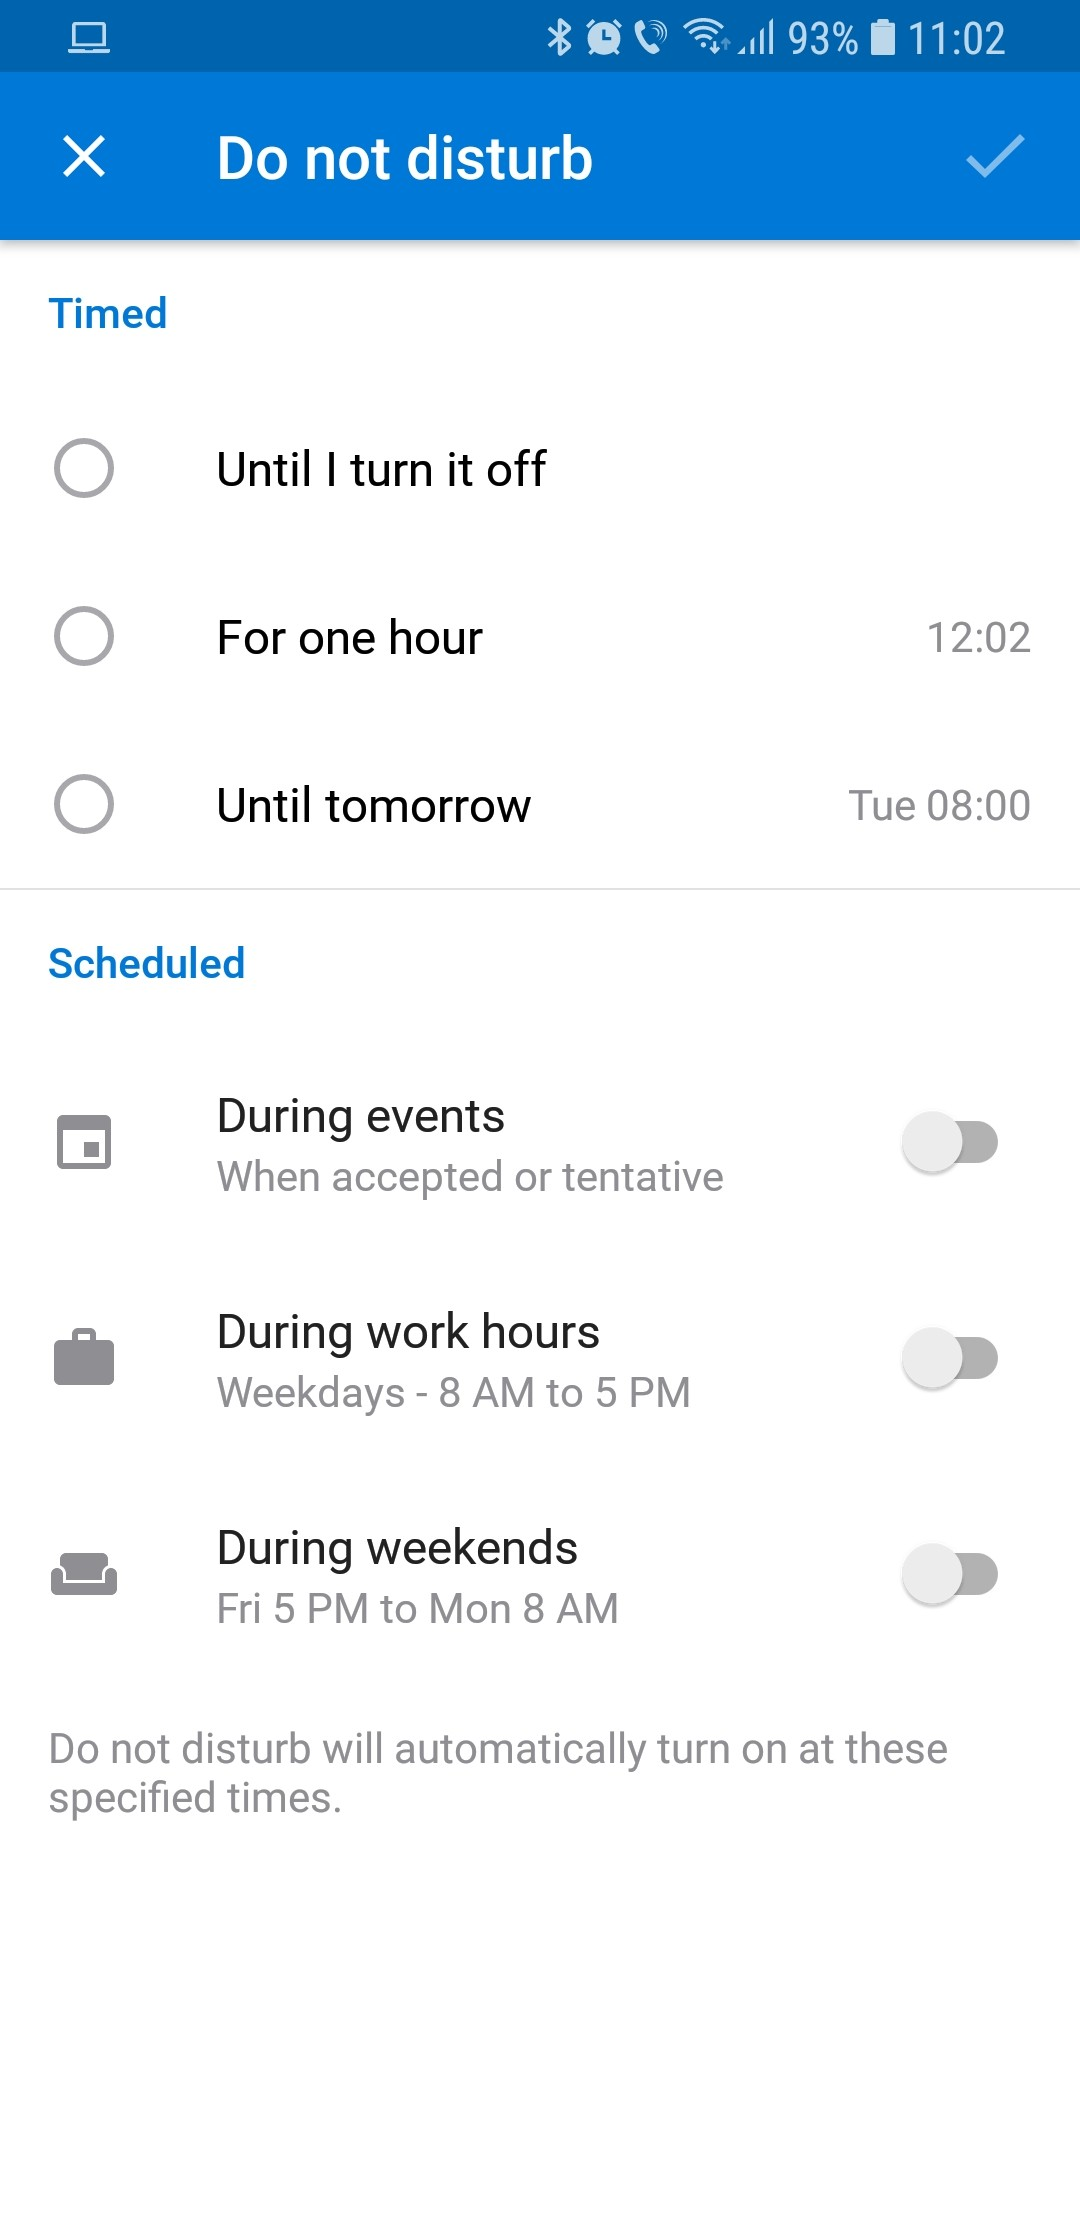 Microsoft Updates Its Android Email App with Do Not Disturb Features